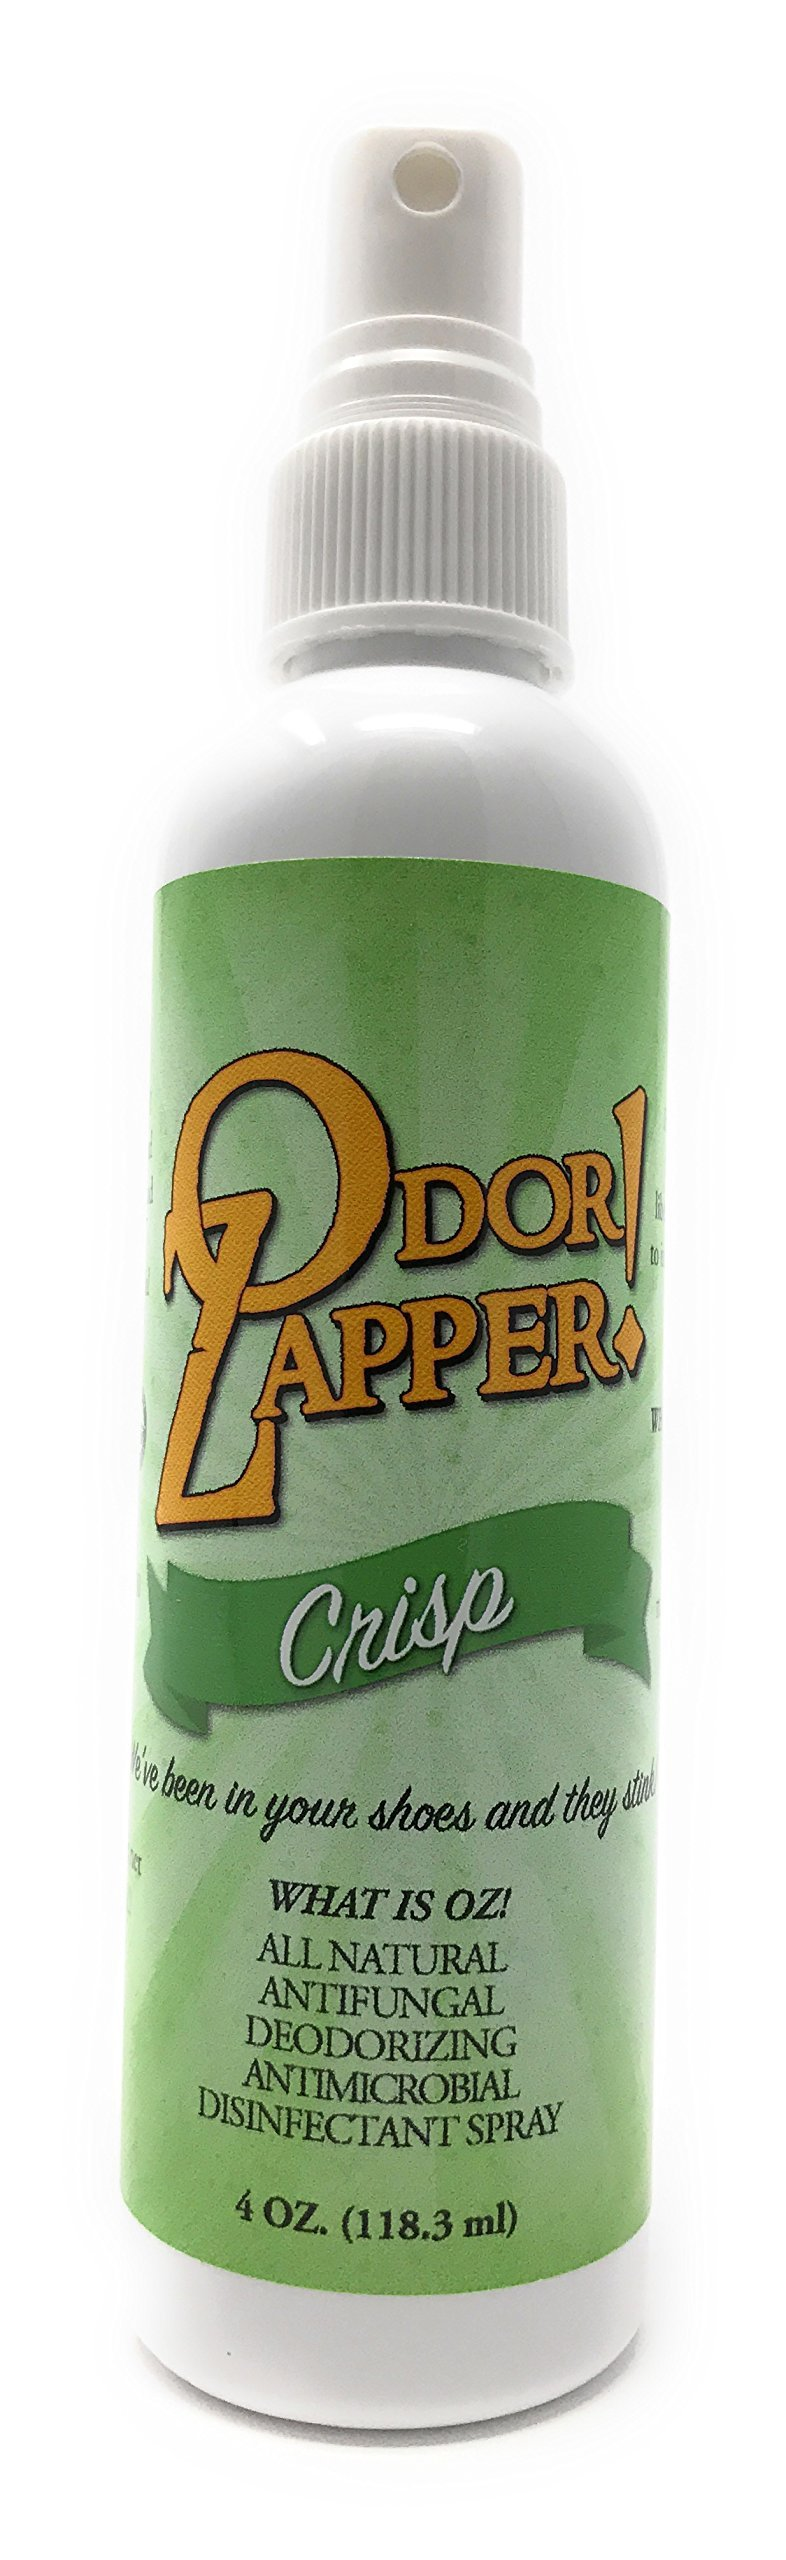 Odor Zapper Disinfectant Spray - For use in Shoes, Gym Bags, Yoga Mats and More! - ''Crisp''